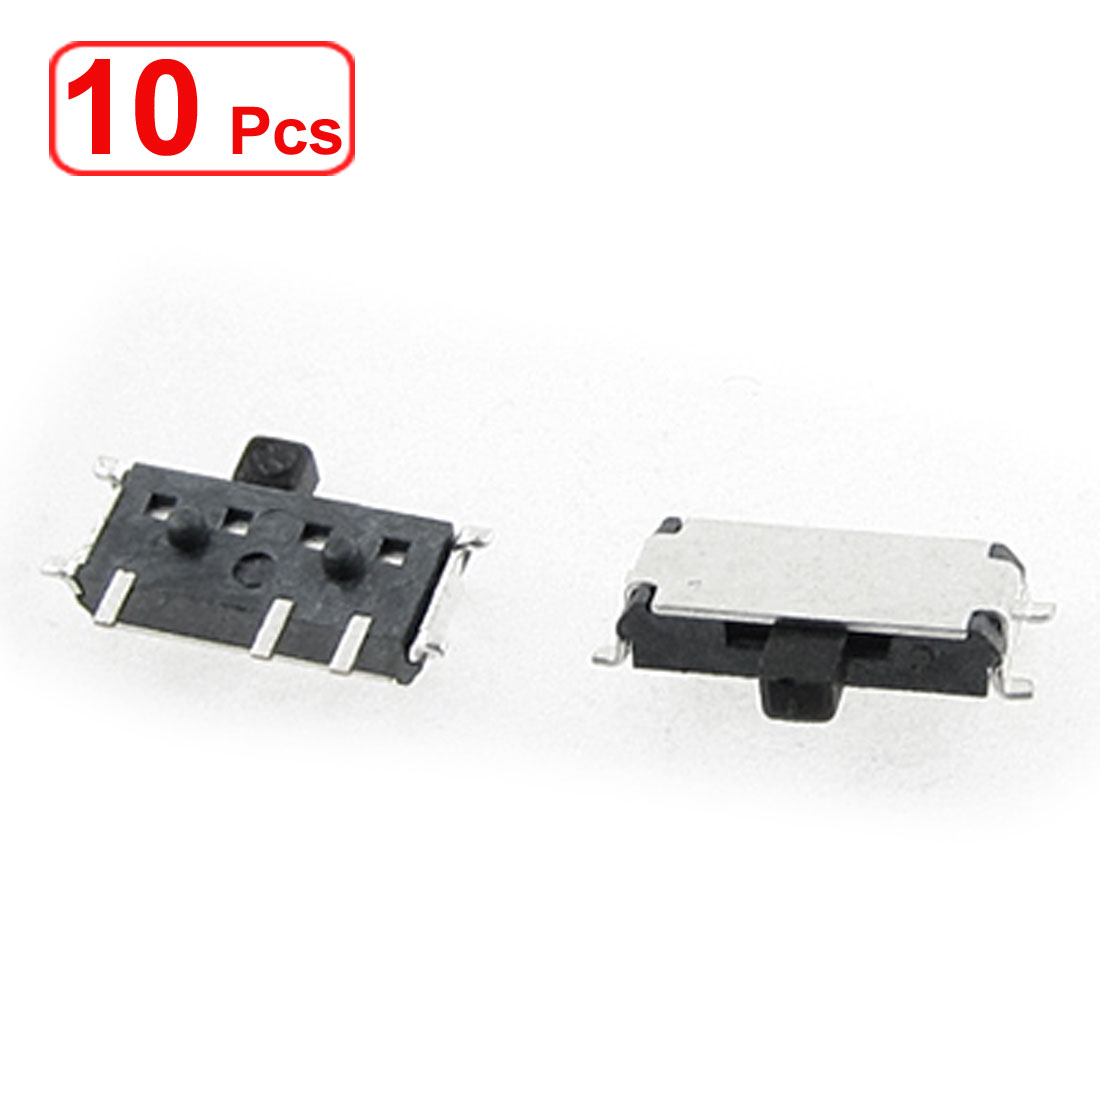 10 PCS DC 50V 0.3A 7 Pin On/On 2 Position 1P2T SPDT SMD Slide Switch Side Knob